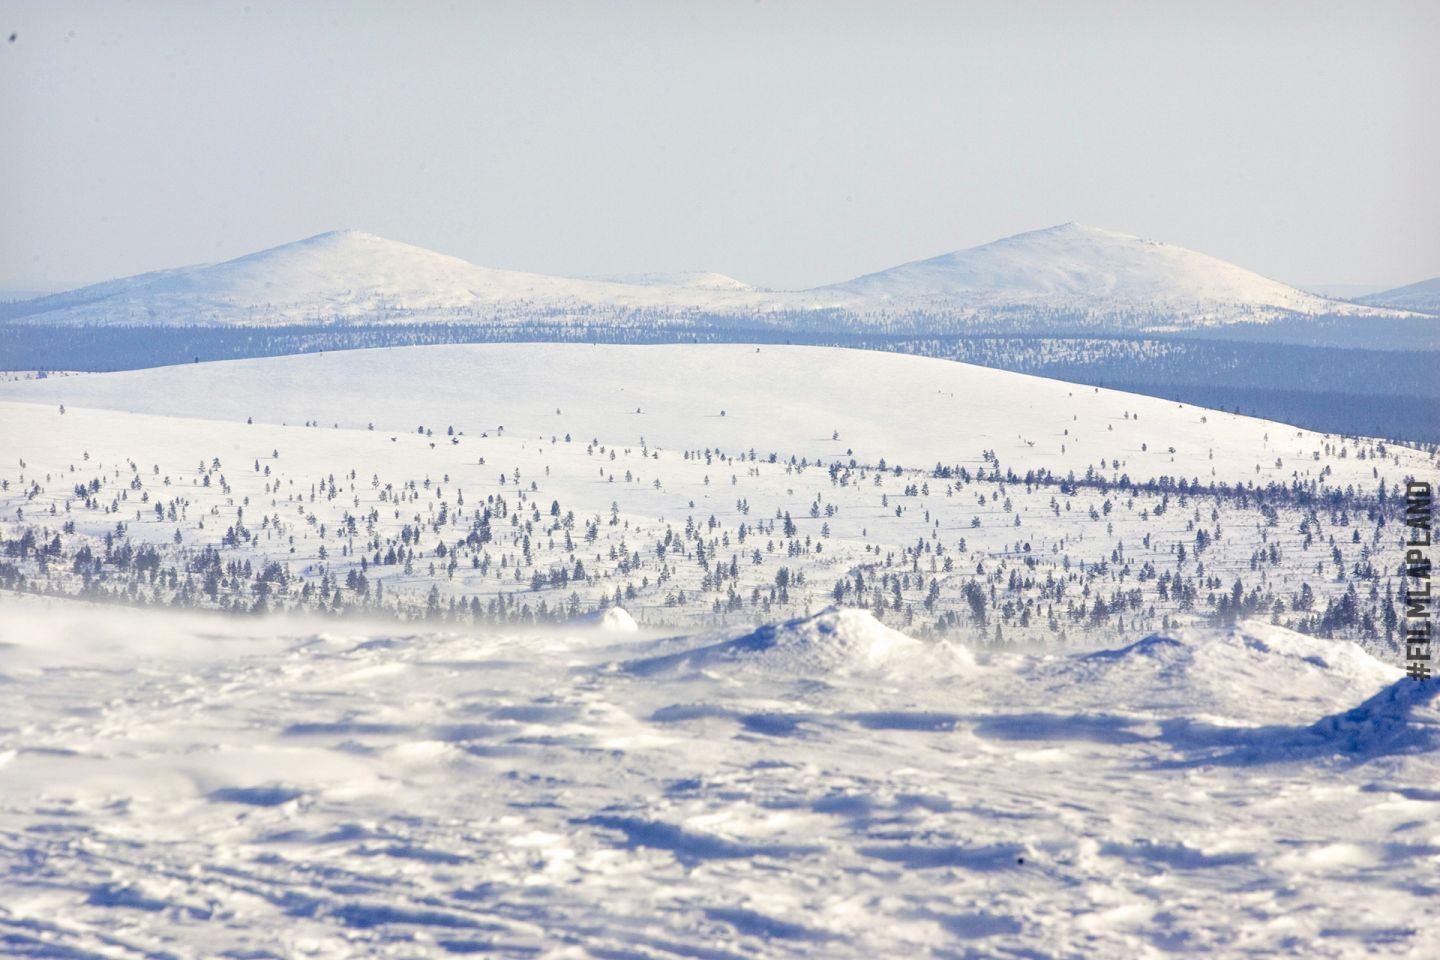 Arctic forest under a thick coat of snow in Inari, Finland